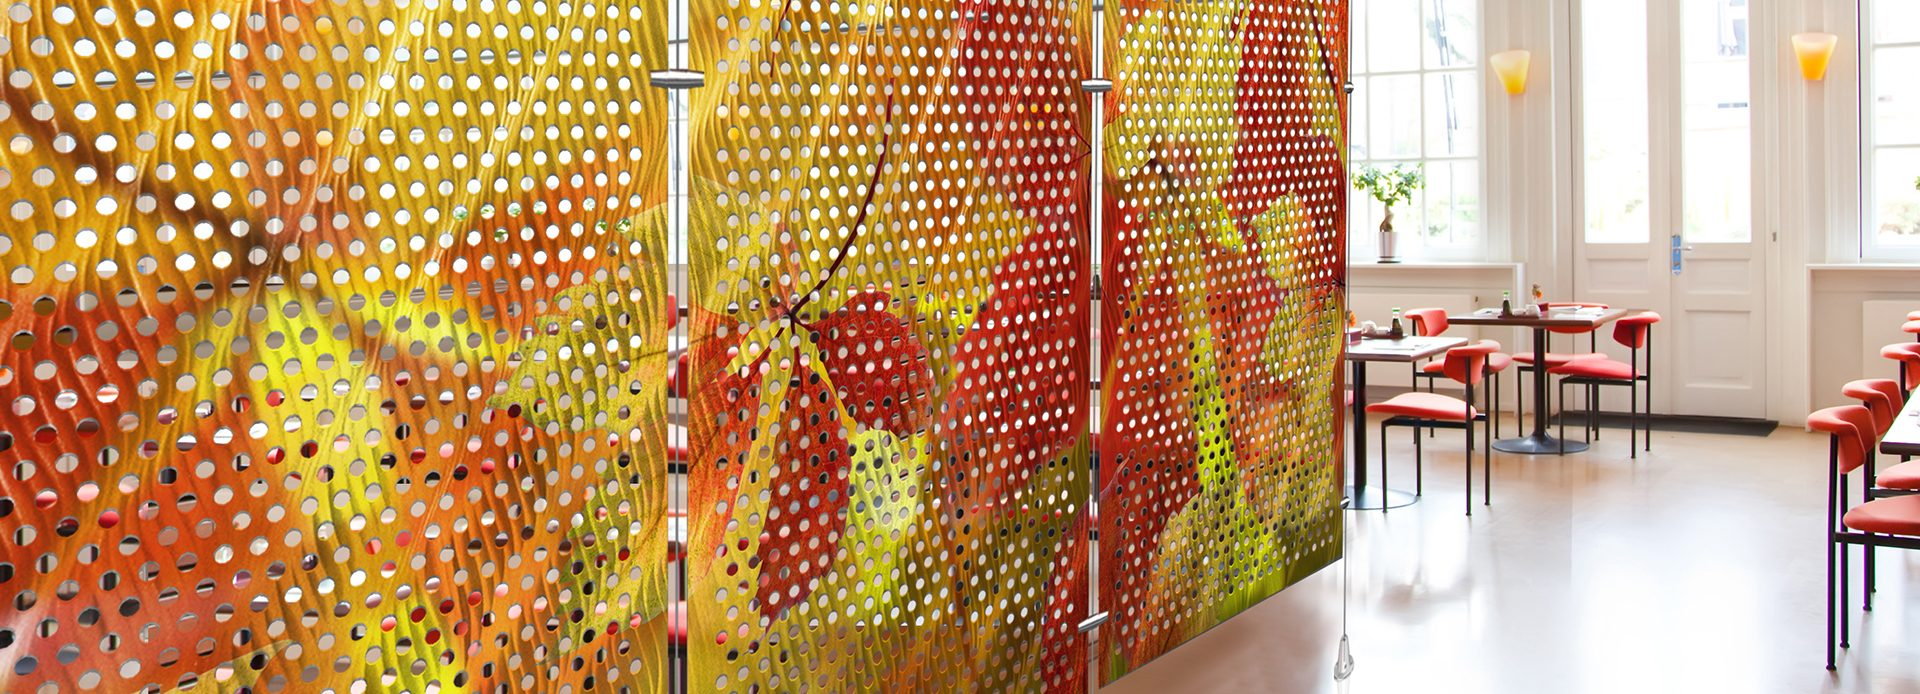 Metal Room Divider Perforated Moz Designer Metals